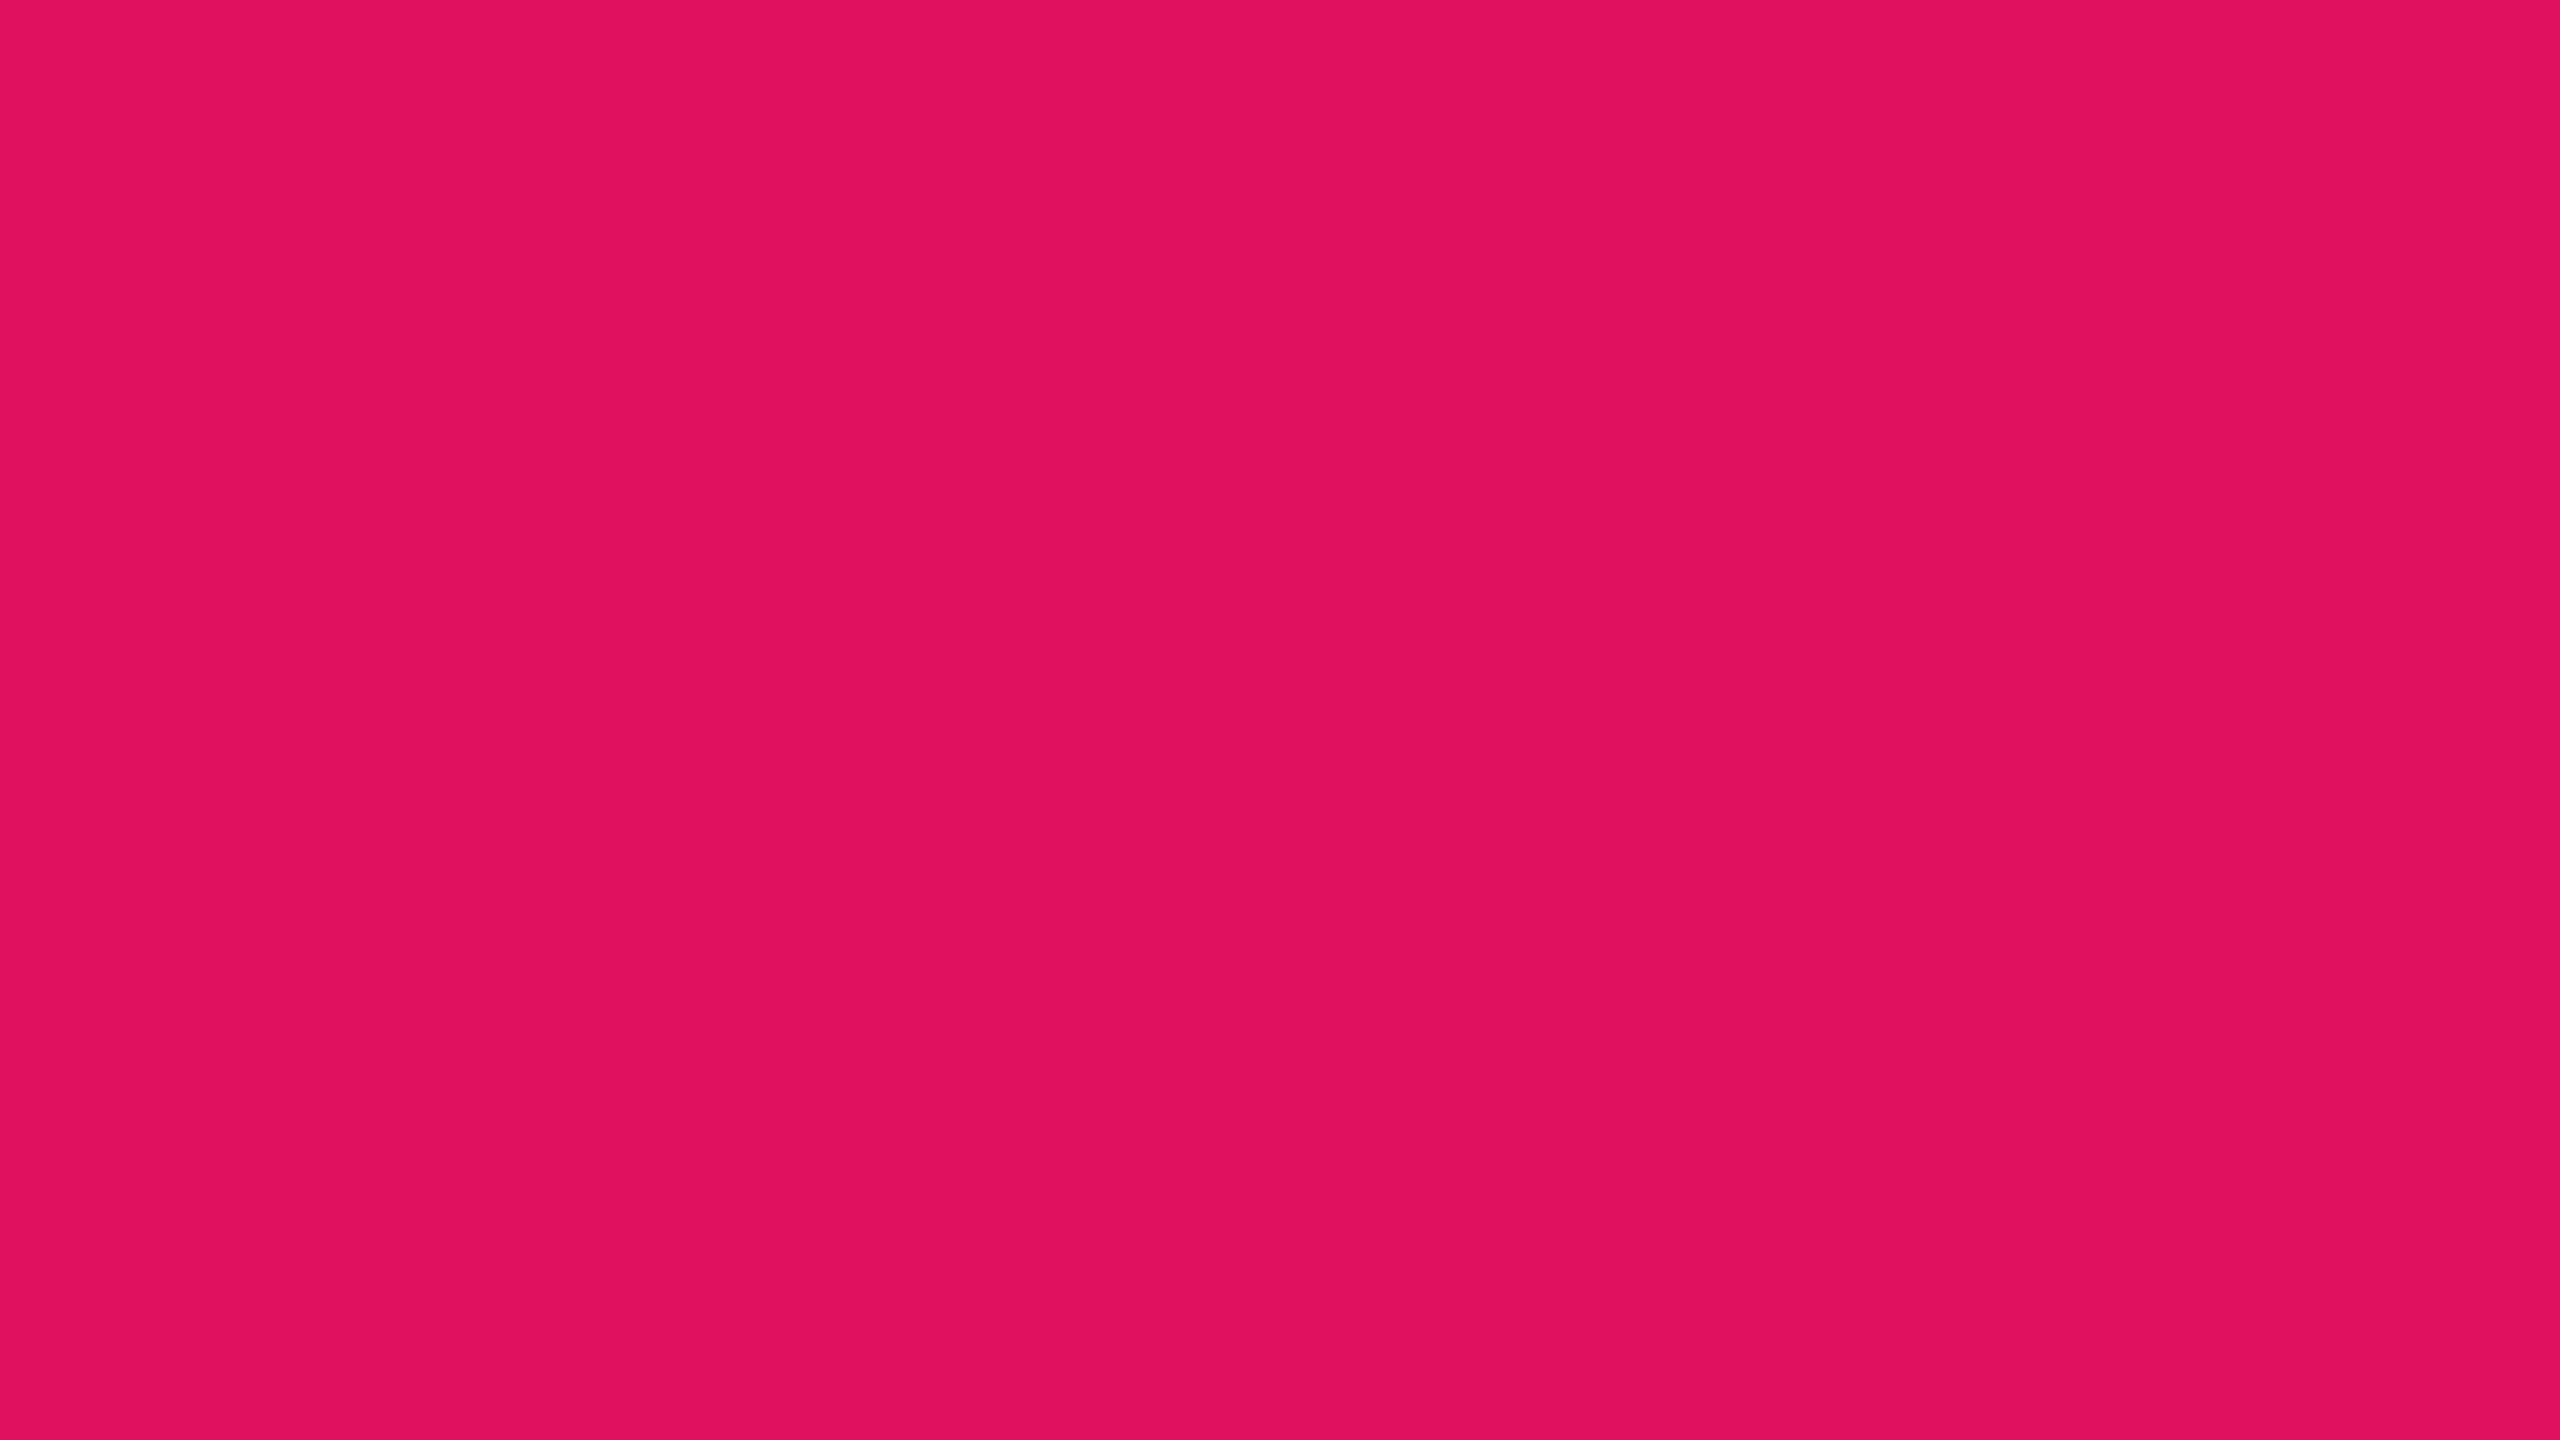 2560x1440 Ruby Solid Color Background